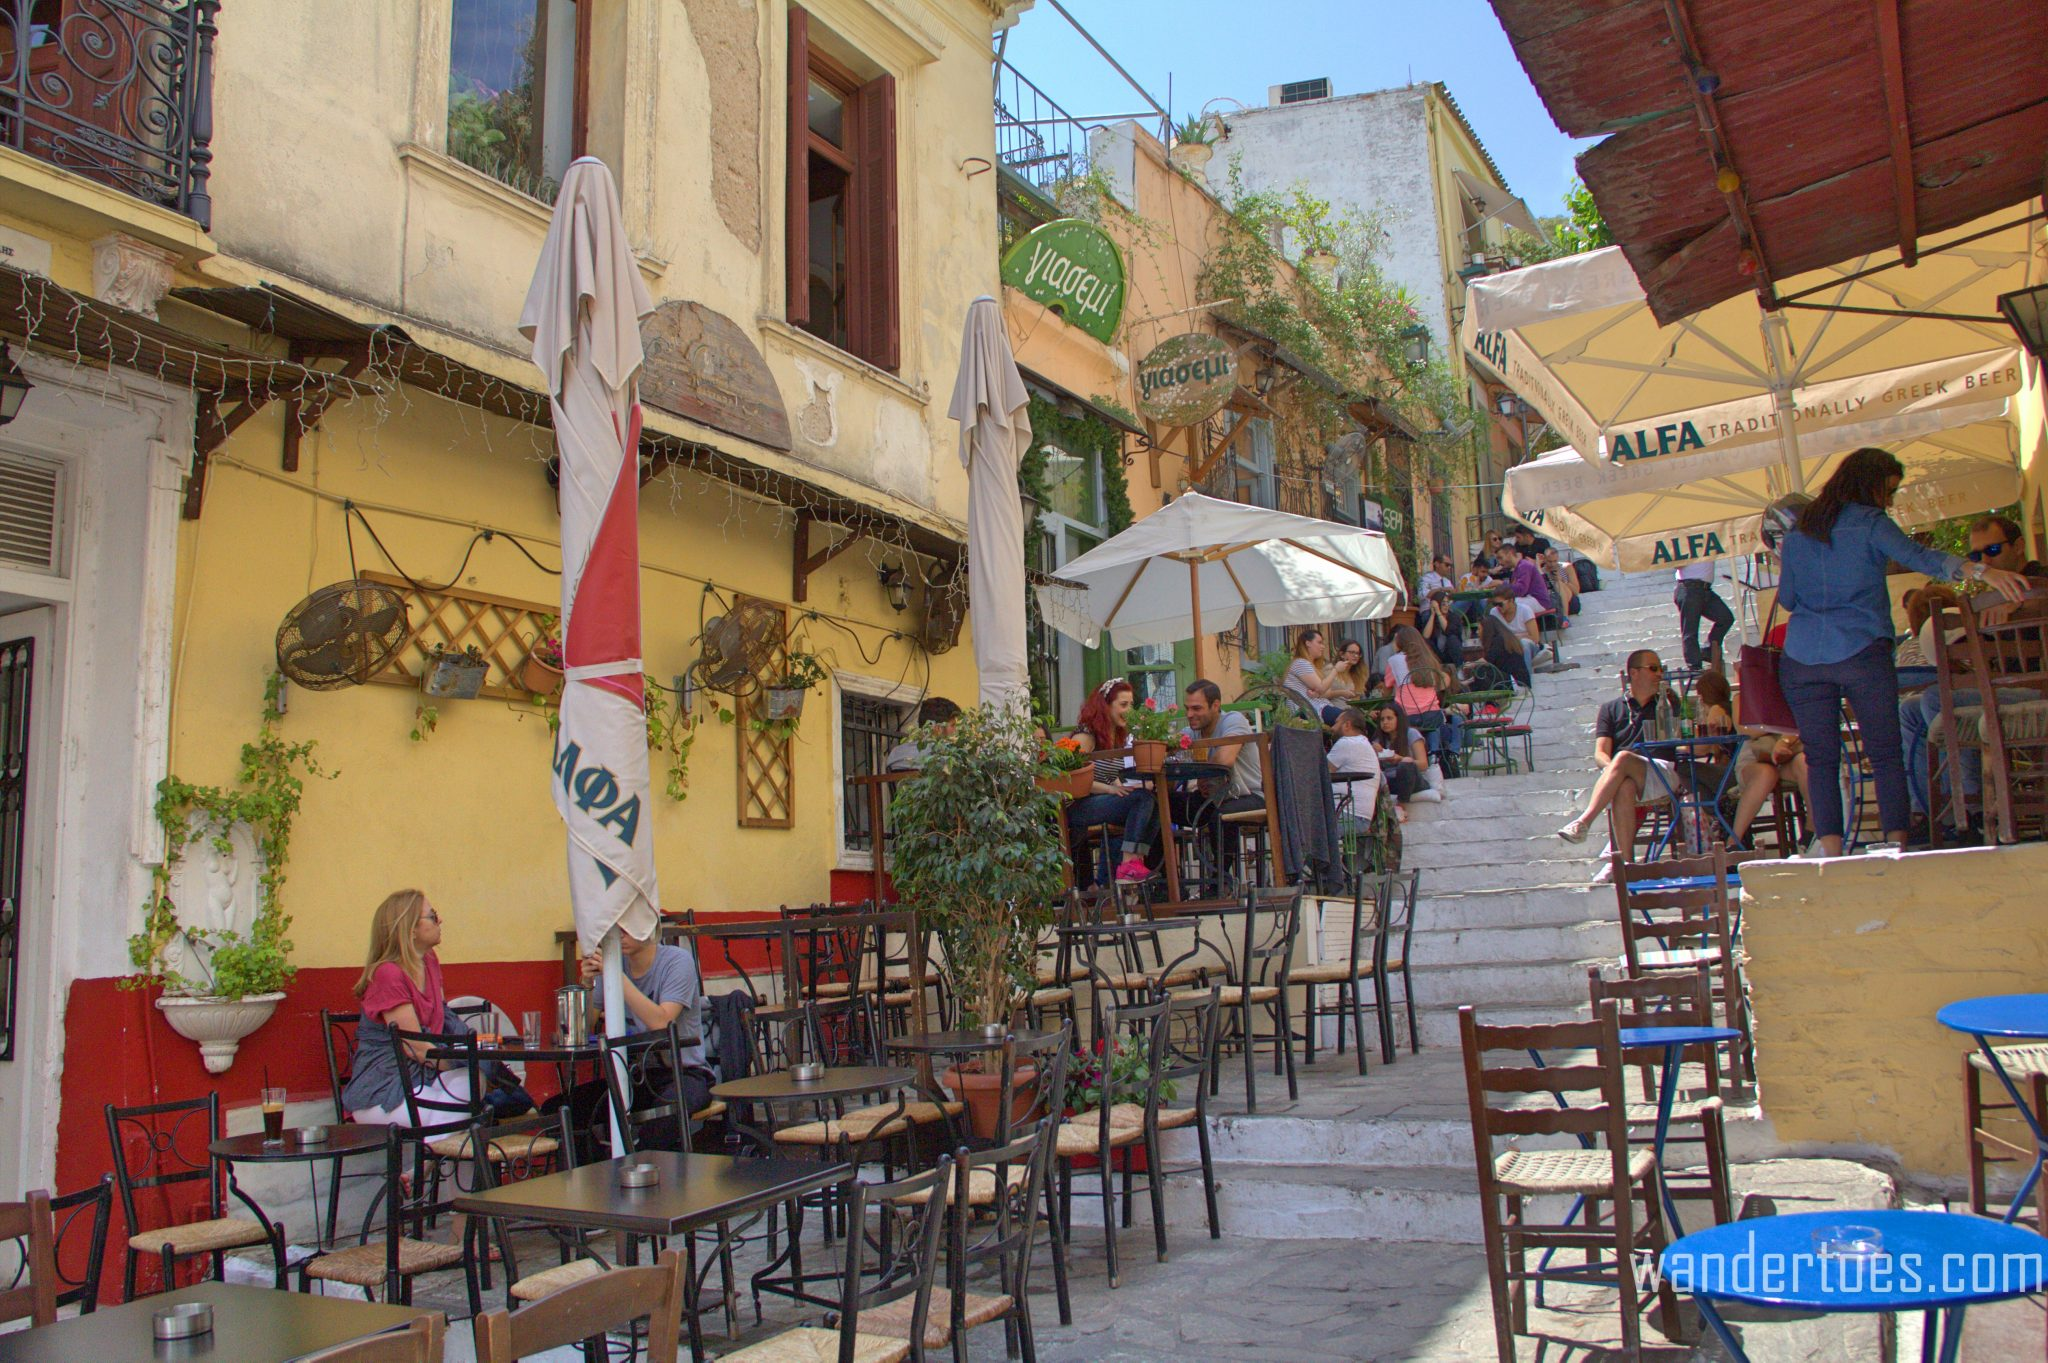 5 Top Places to Eat in Plaka - Wandertoes